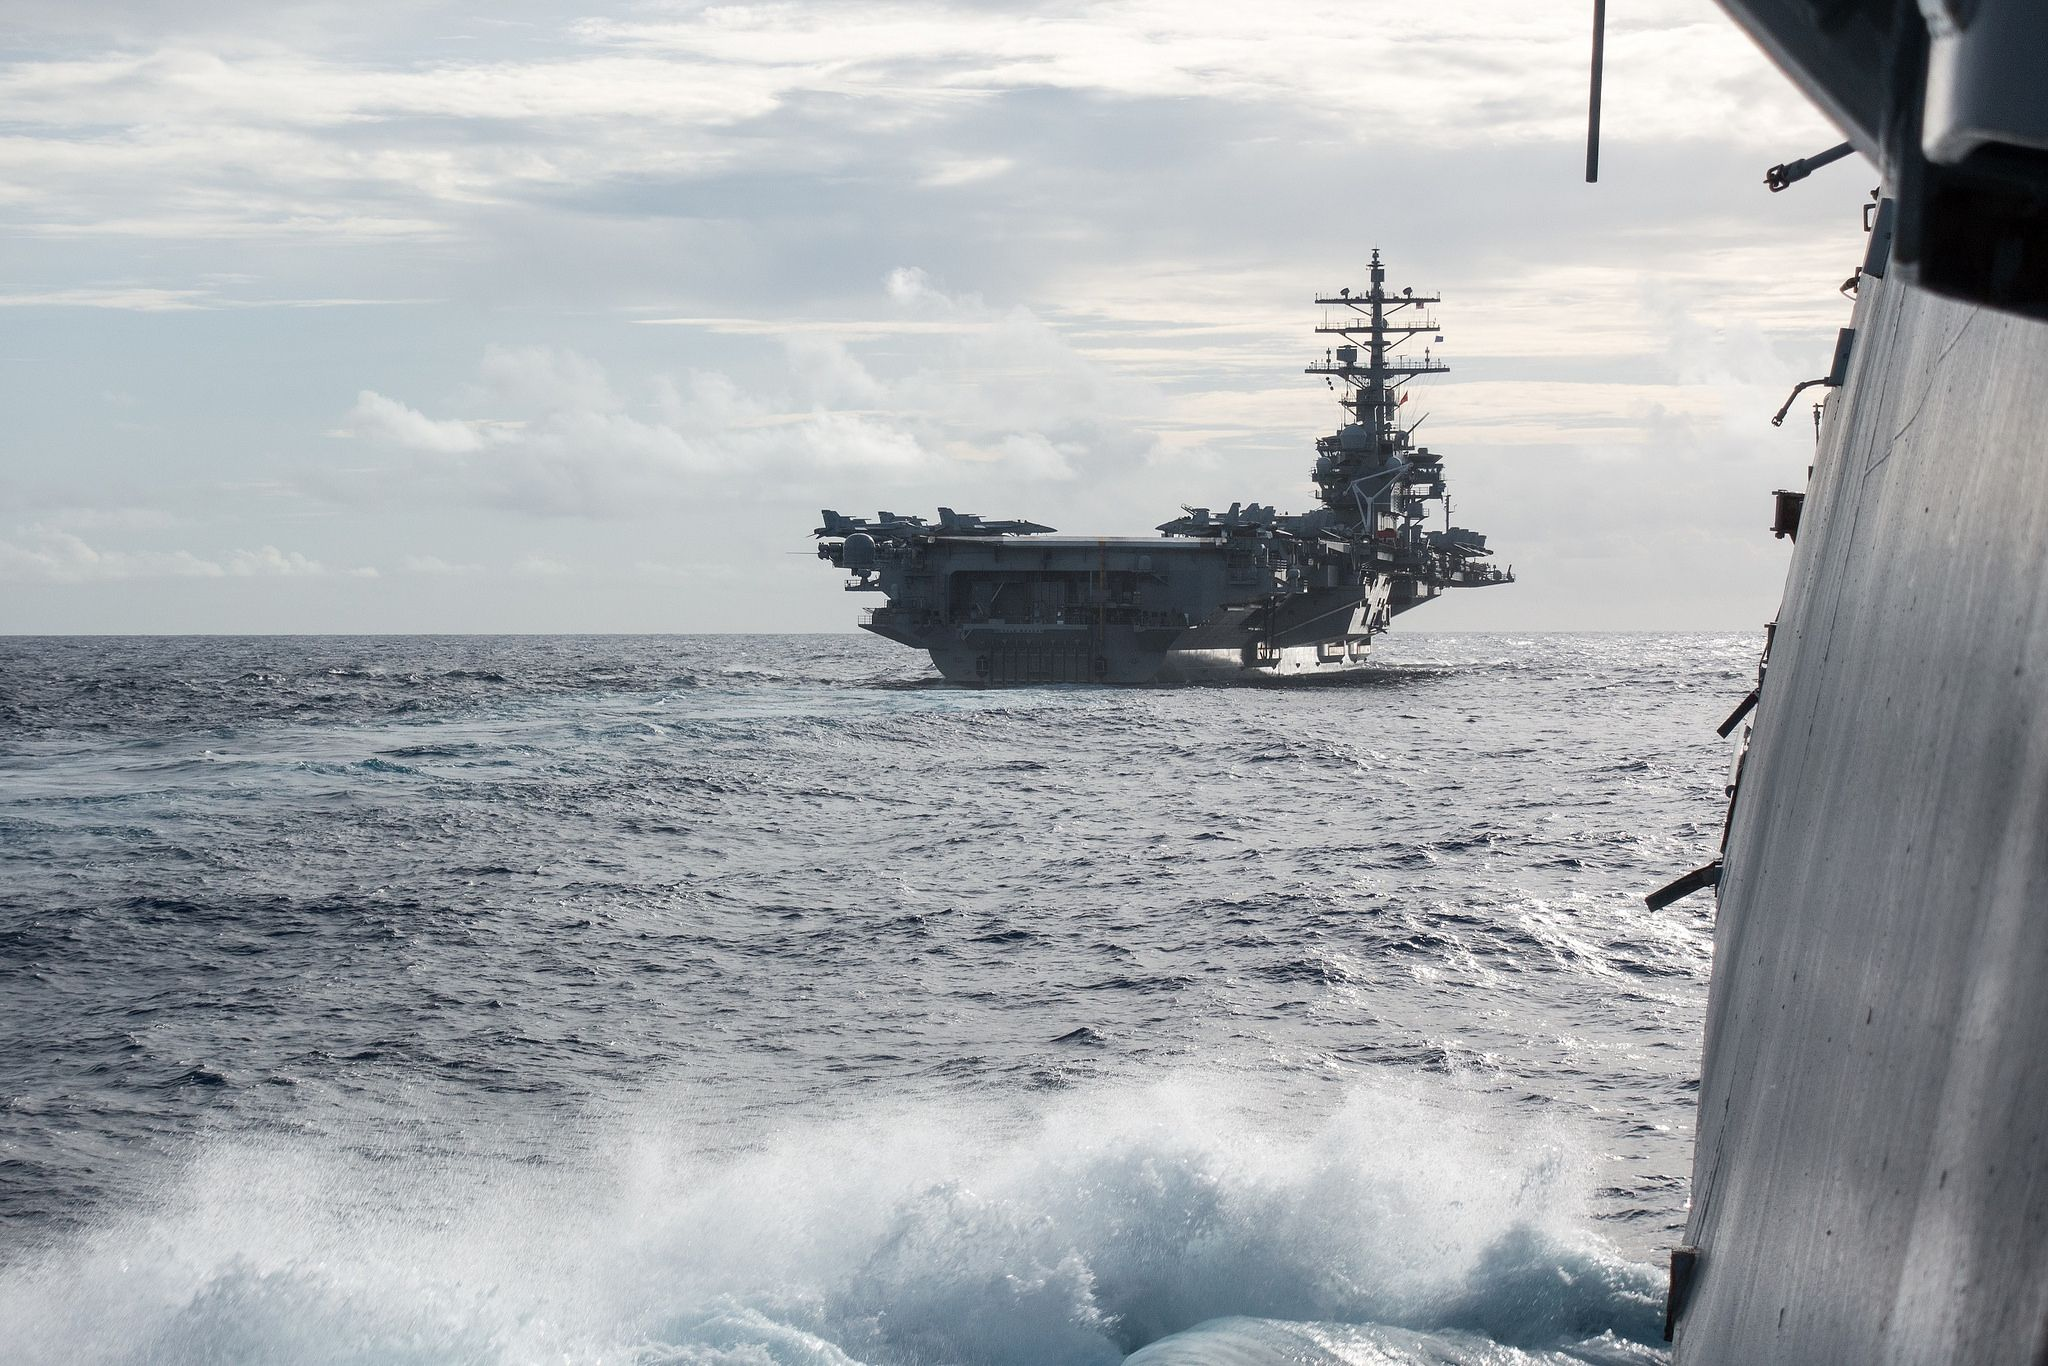 https://flic.kr/p/MV6SEp | 161002-N-GY813-002 | PHILIPPINE SEA (Oct. 2, 2016) The Nimitz-class aircraft carrier USS Ronald Reagan (CVN76) steams ahead of the Arleigh Burke-class guided-missile destroyer USS Stethem (DDG 63). Stethem is on patrol with Carrier Strike Group Five (CSG 5) in the Philippine Sea supporting security and stability in the Indo-Asia-Pacific region. (U.S. Navy photo by Lt. Cmdr. Tyrone Pham/ Released)